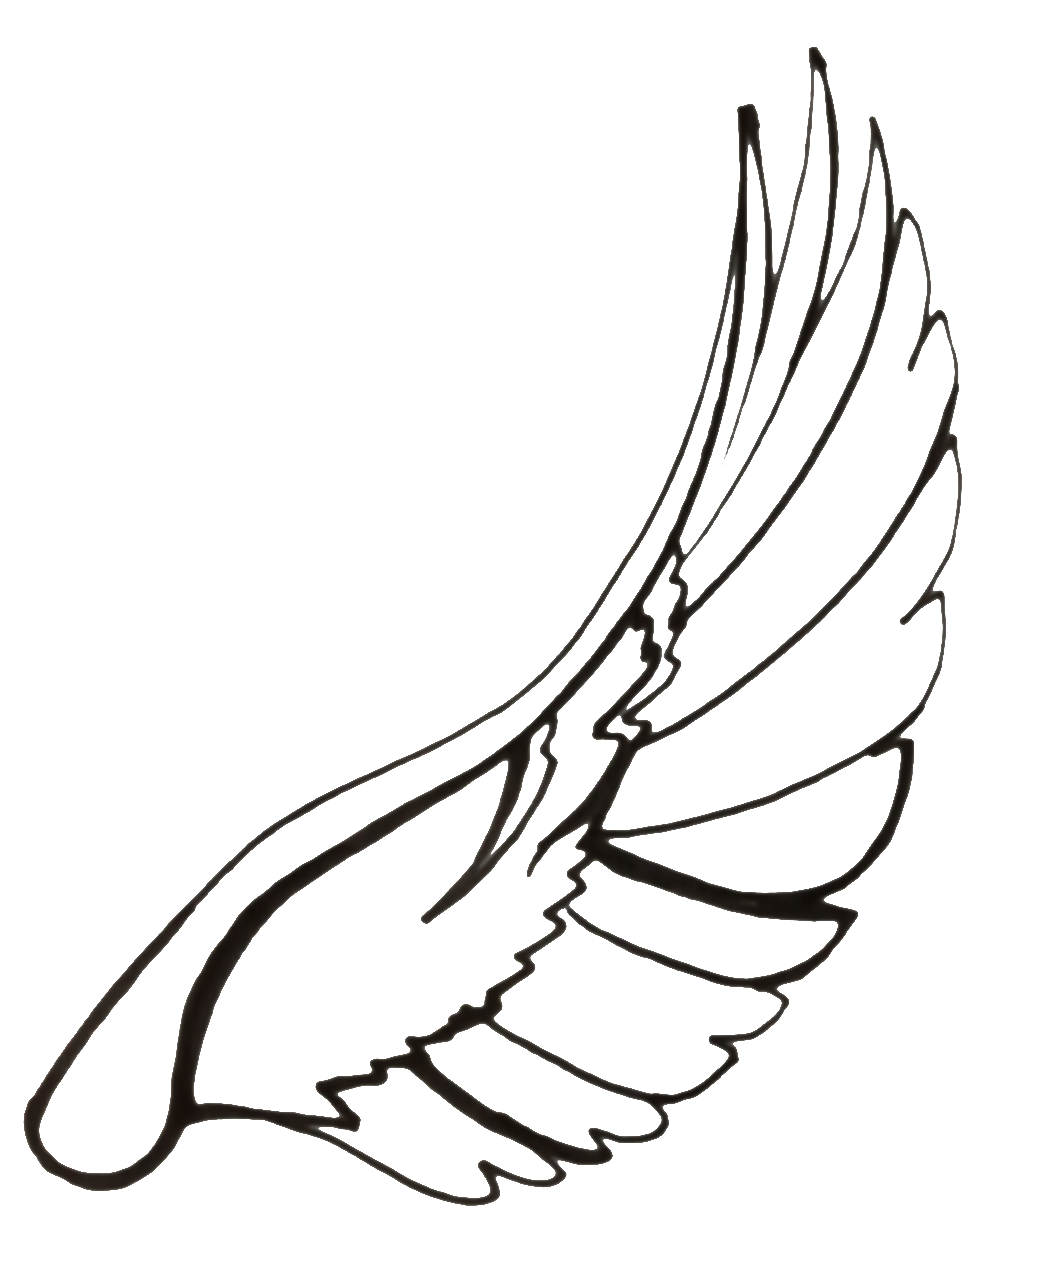 Line Drawing Wings : Line drawing wings clipart best